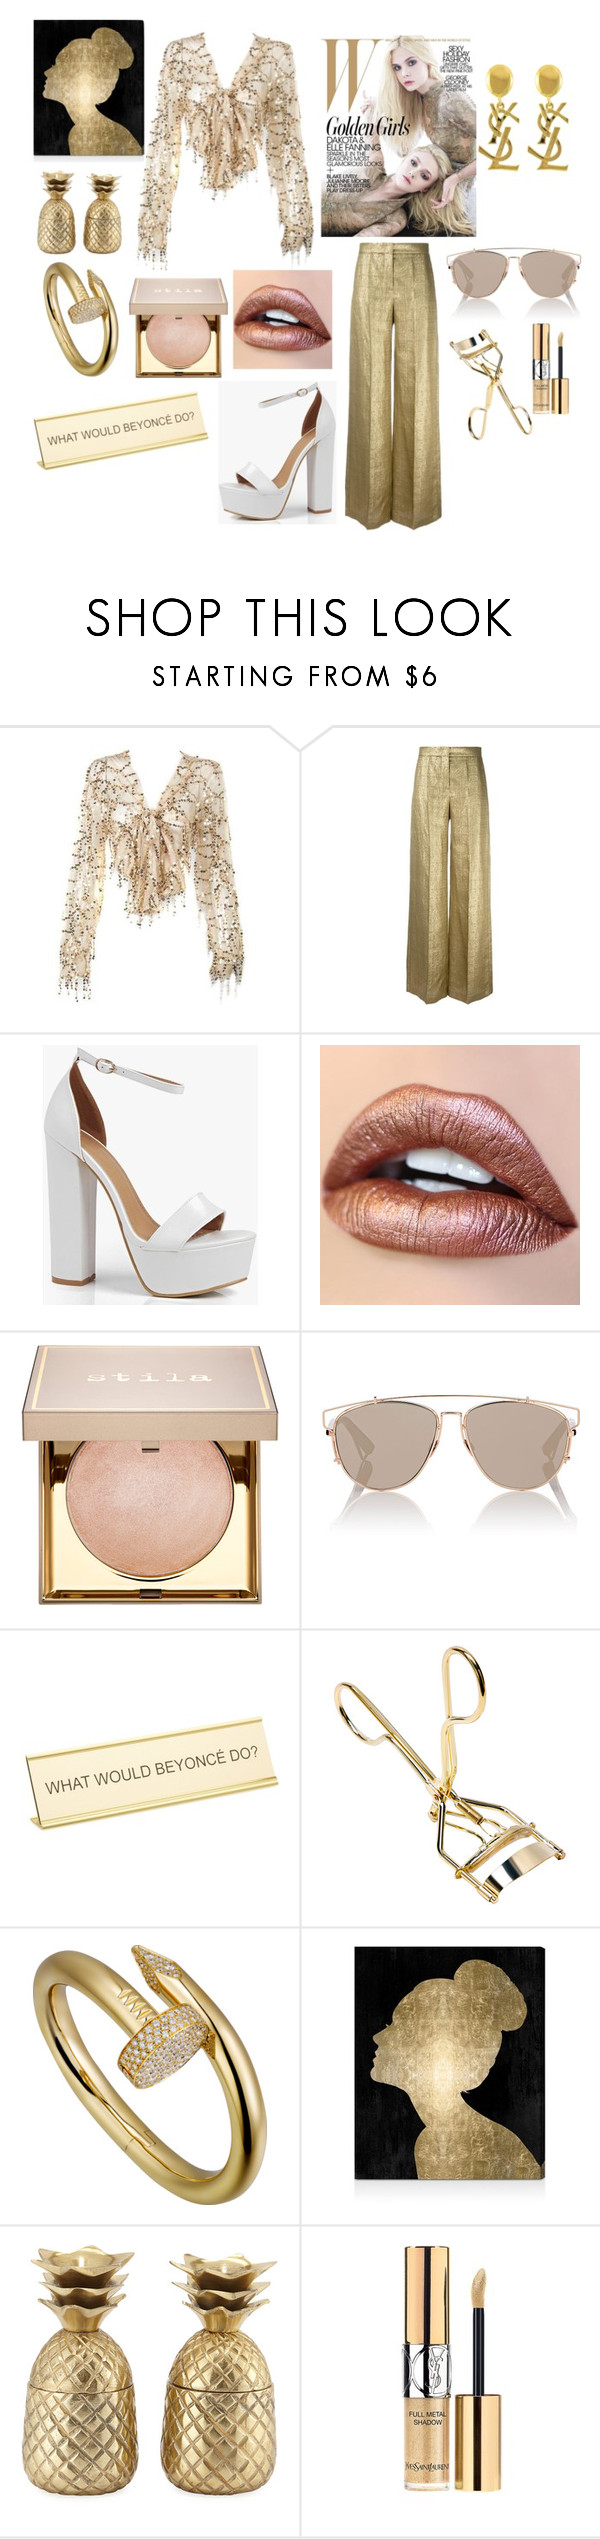 """""""shimmery."""" by comerttaylan ❤ liked on Polyvore featuring Etro, Yves Saint Laurent, Boohoo, Stila, Christian Dior, He Said, She Said, Oliver Gal Artist Co. and Jodhpuri"""